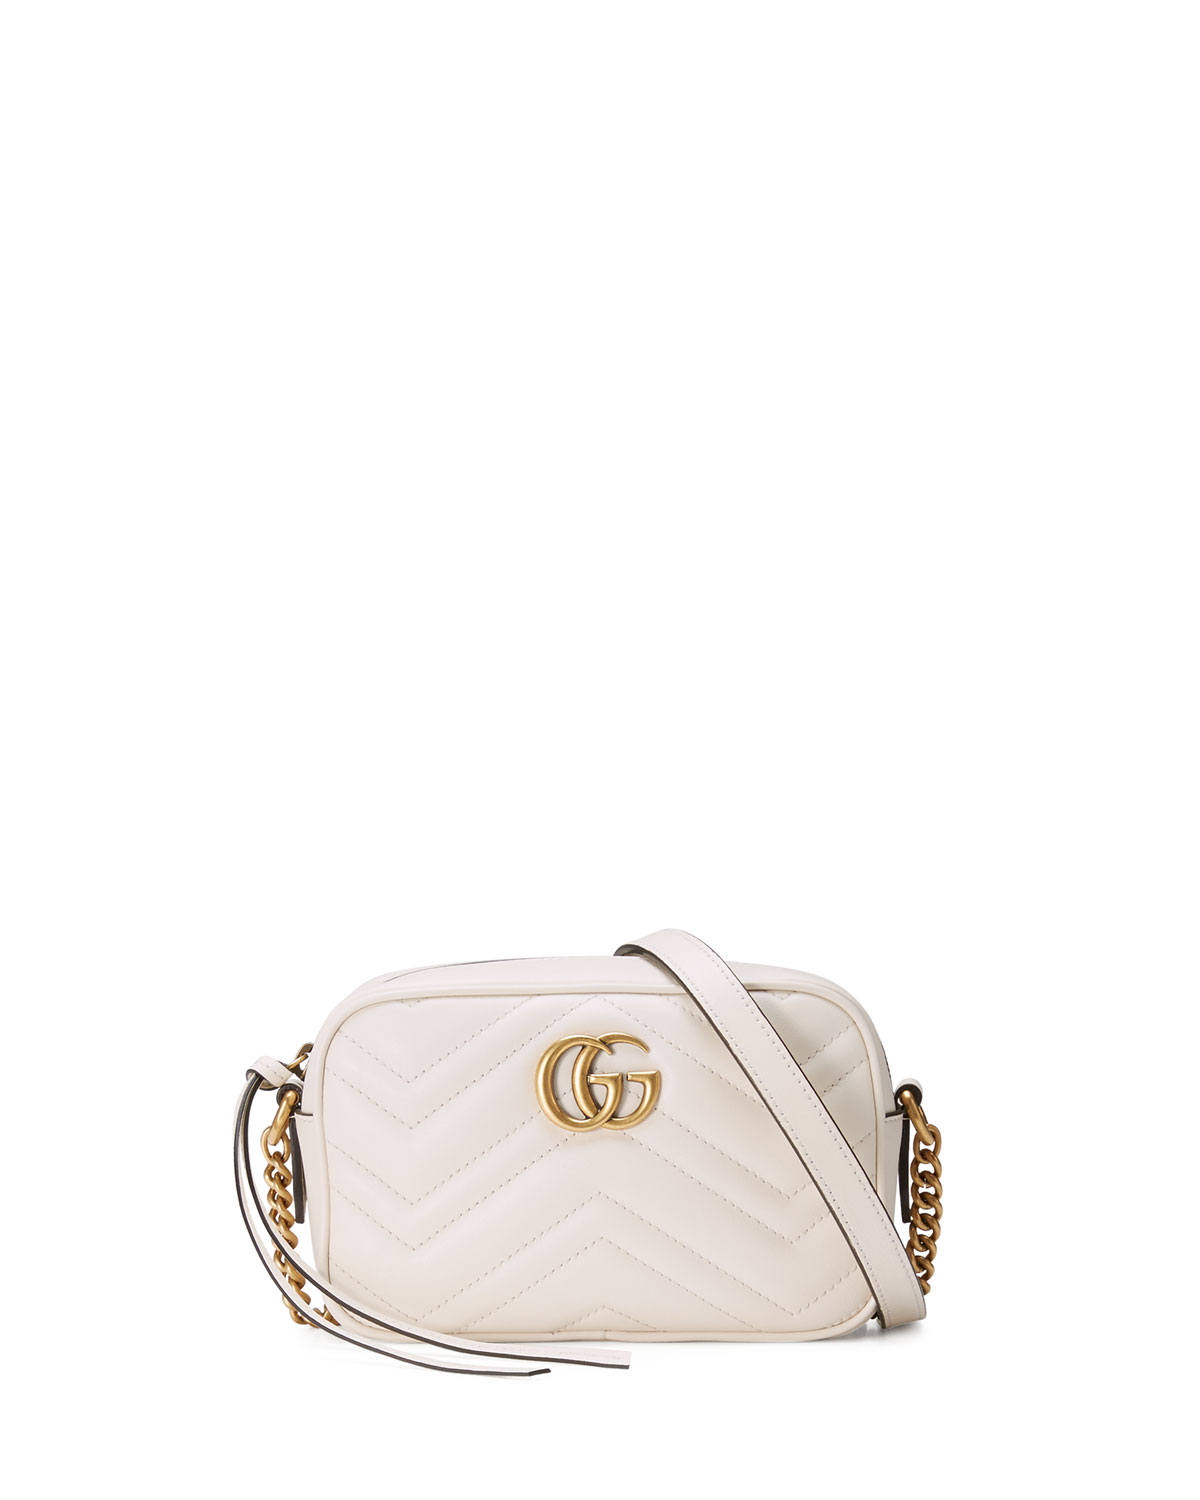 bright n colour elegant shoes special sales GG Marmont Mini Matelasse Camera Bag, White